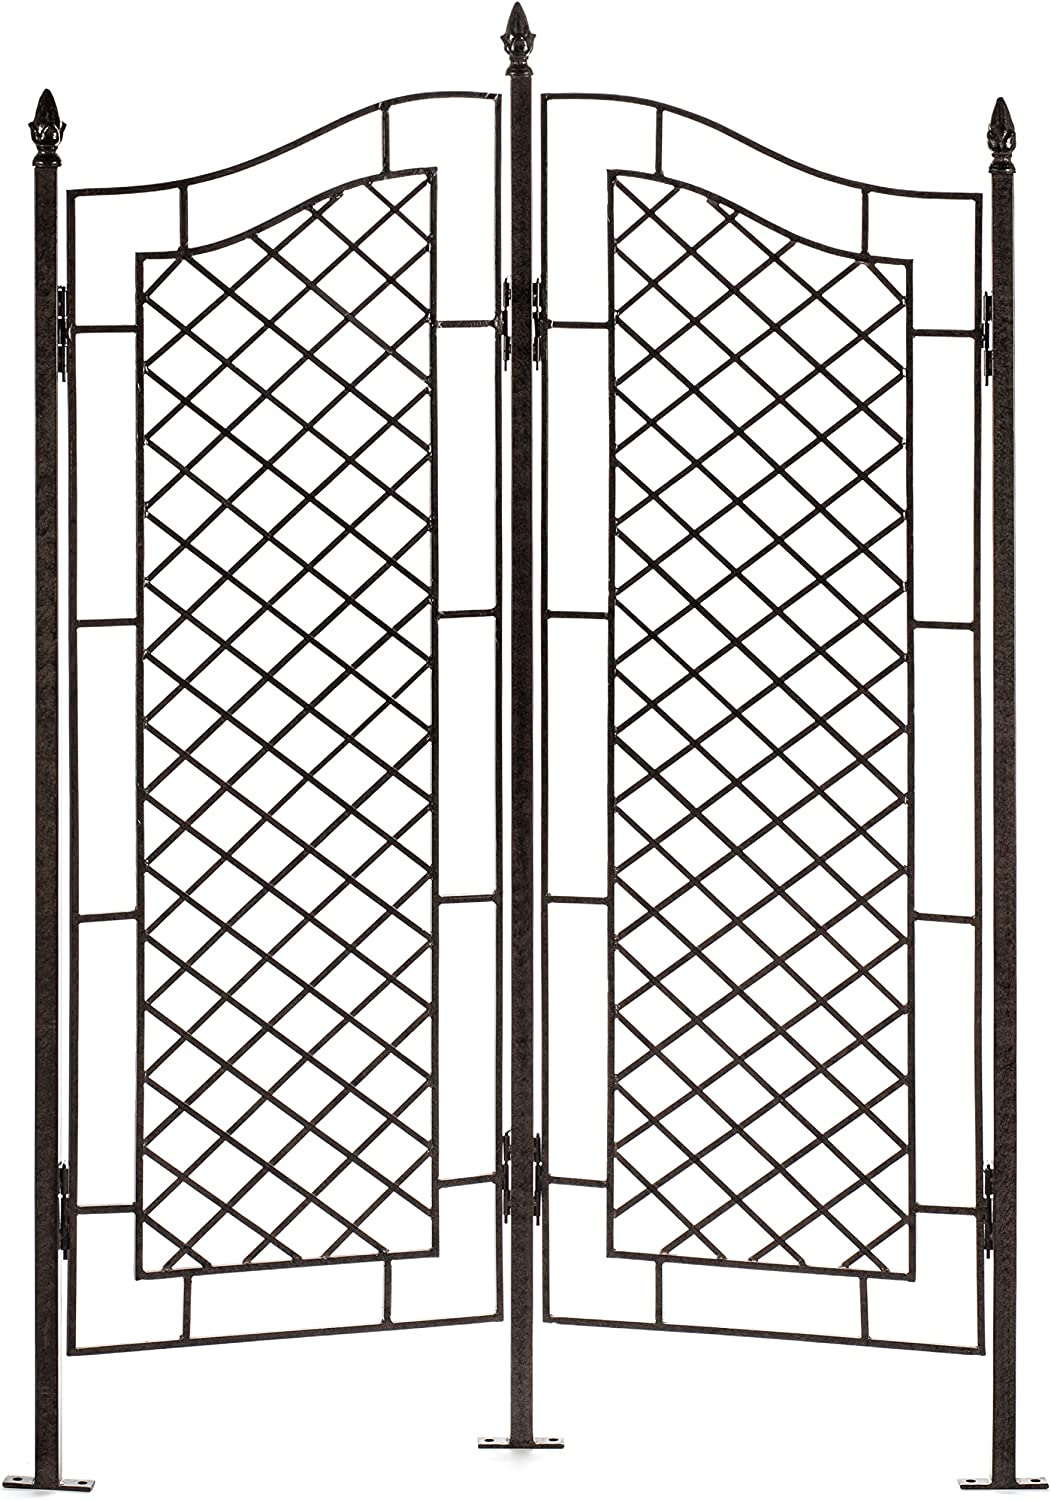 H Potter Large Trellis for Climbing Plants Wrought Iron Metal 2 Panel Ivy Garden Privacy Screen Patio Deck